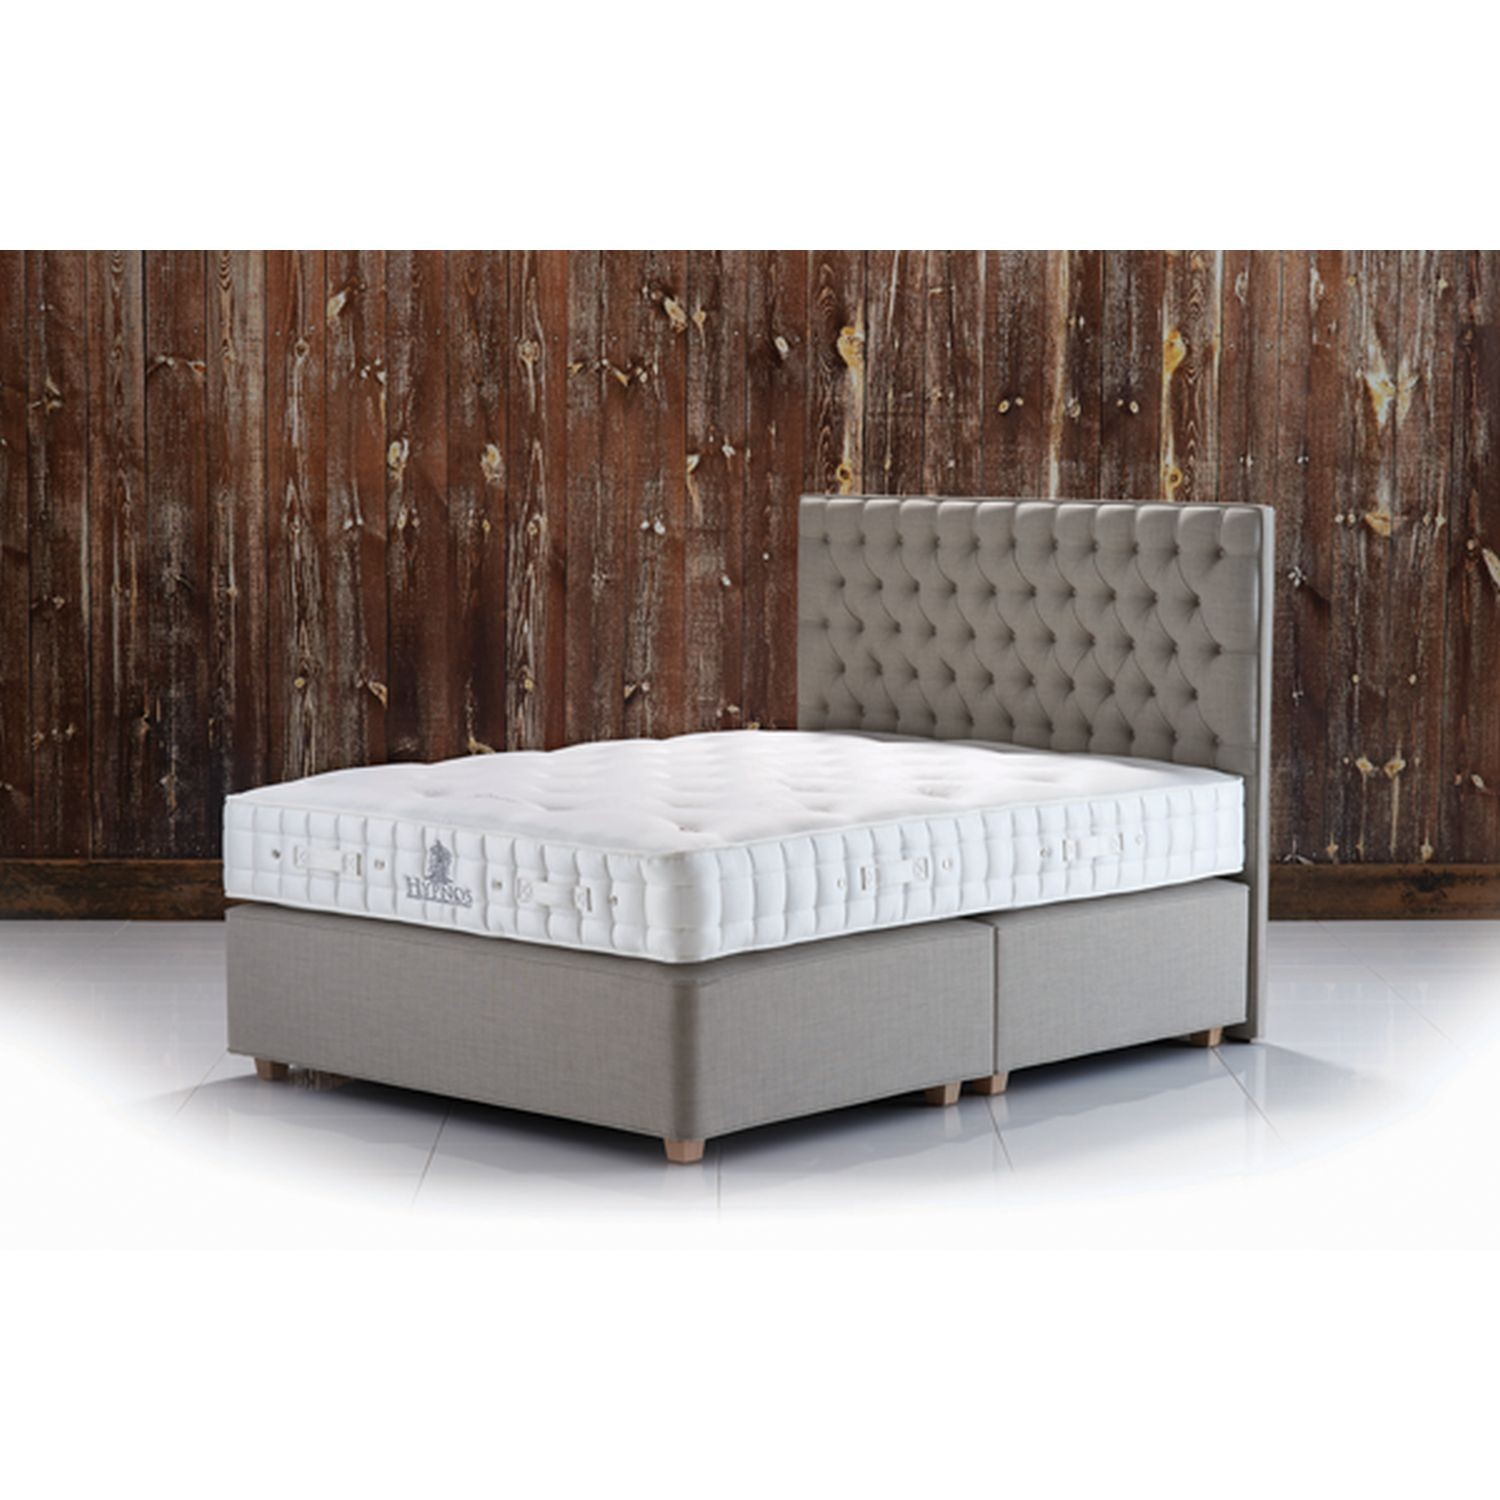 Hypnos luxury supreme small double deep divan set leekes for Small double divan set